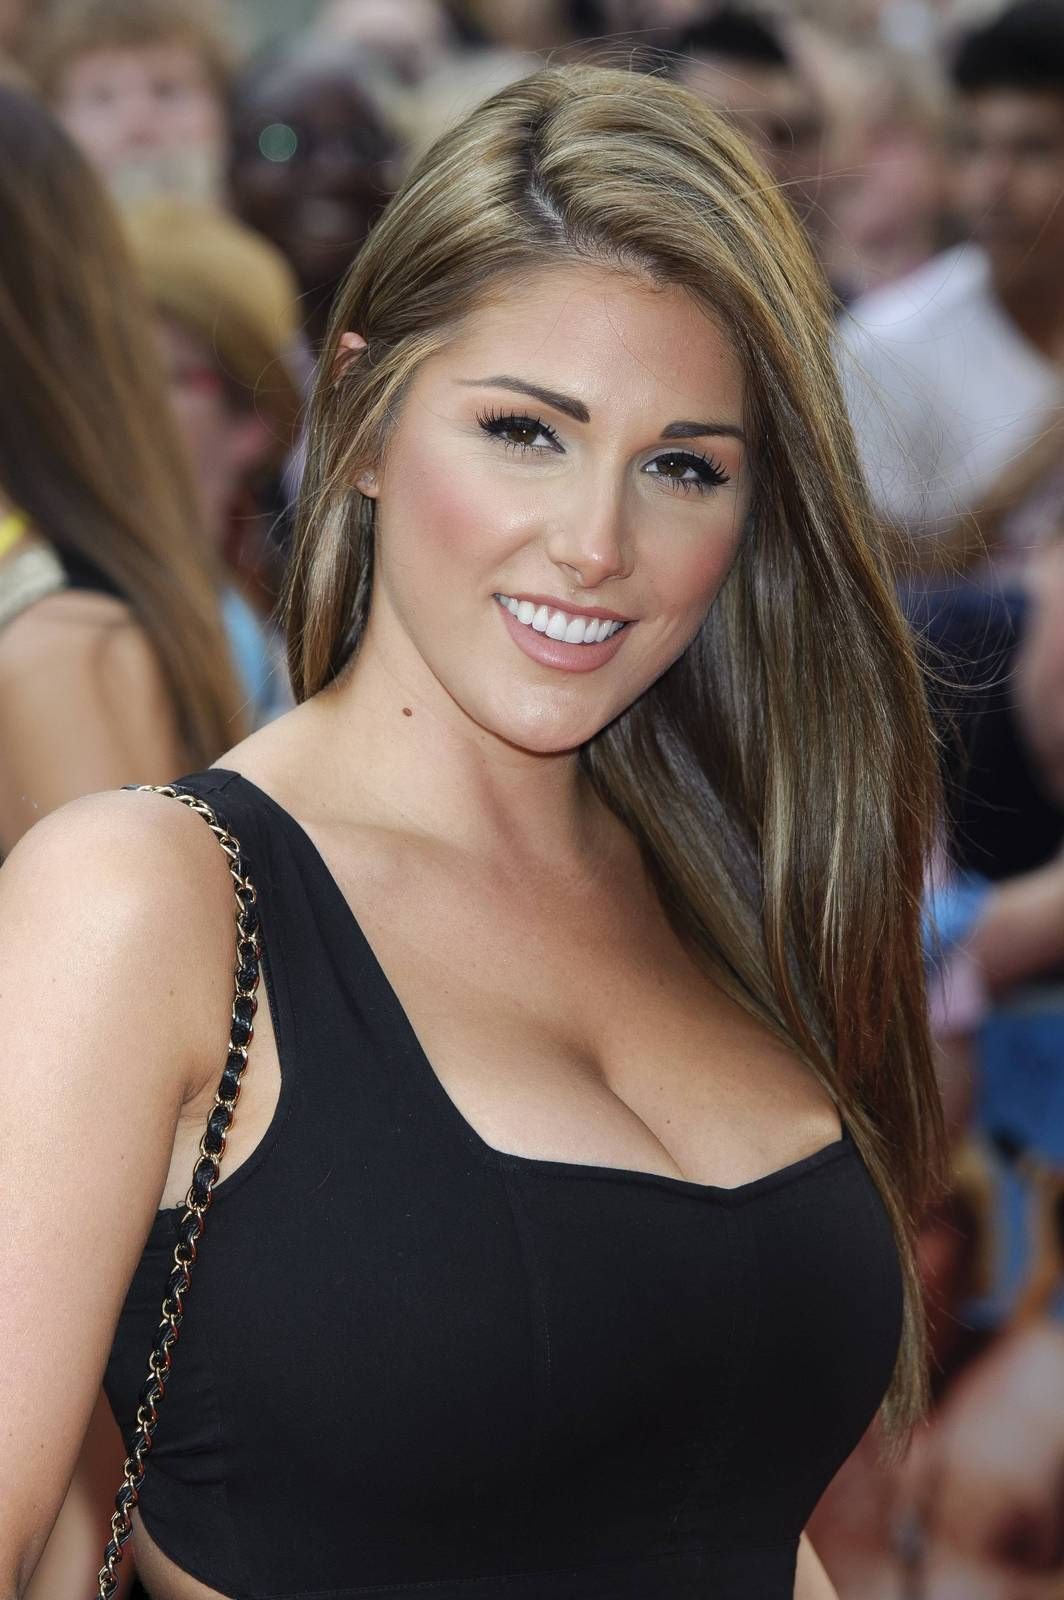 Celebrites Lucy Pinder naked (47 foto and video), Tits, Cleavage, Boobs, braless 2015